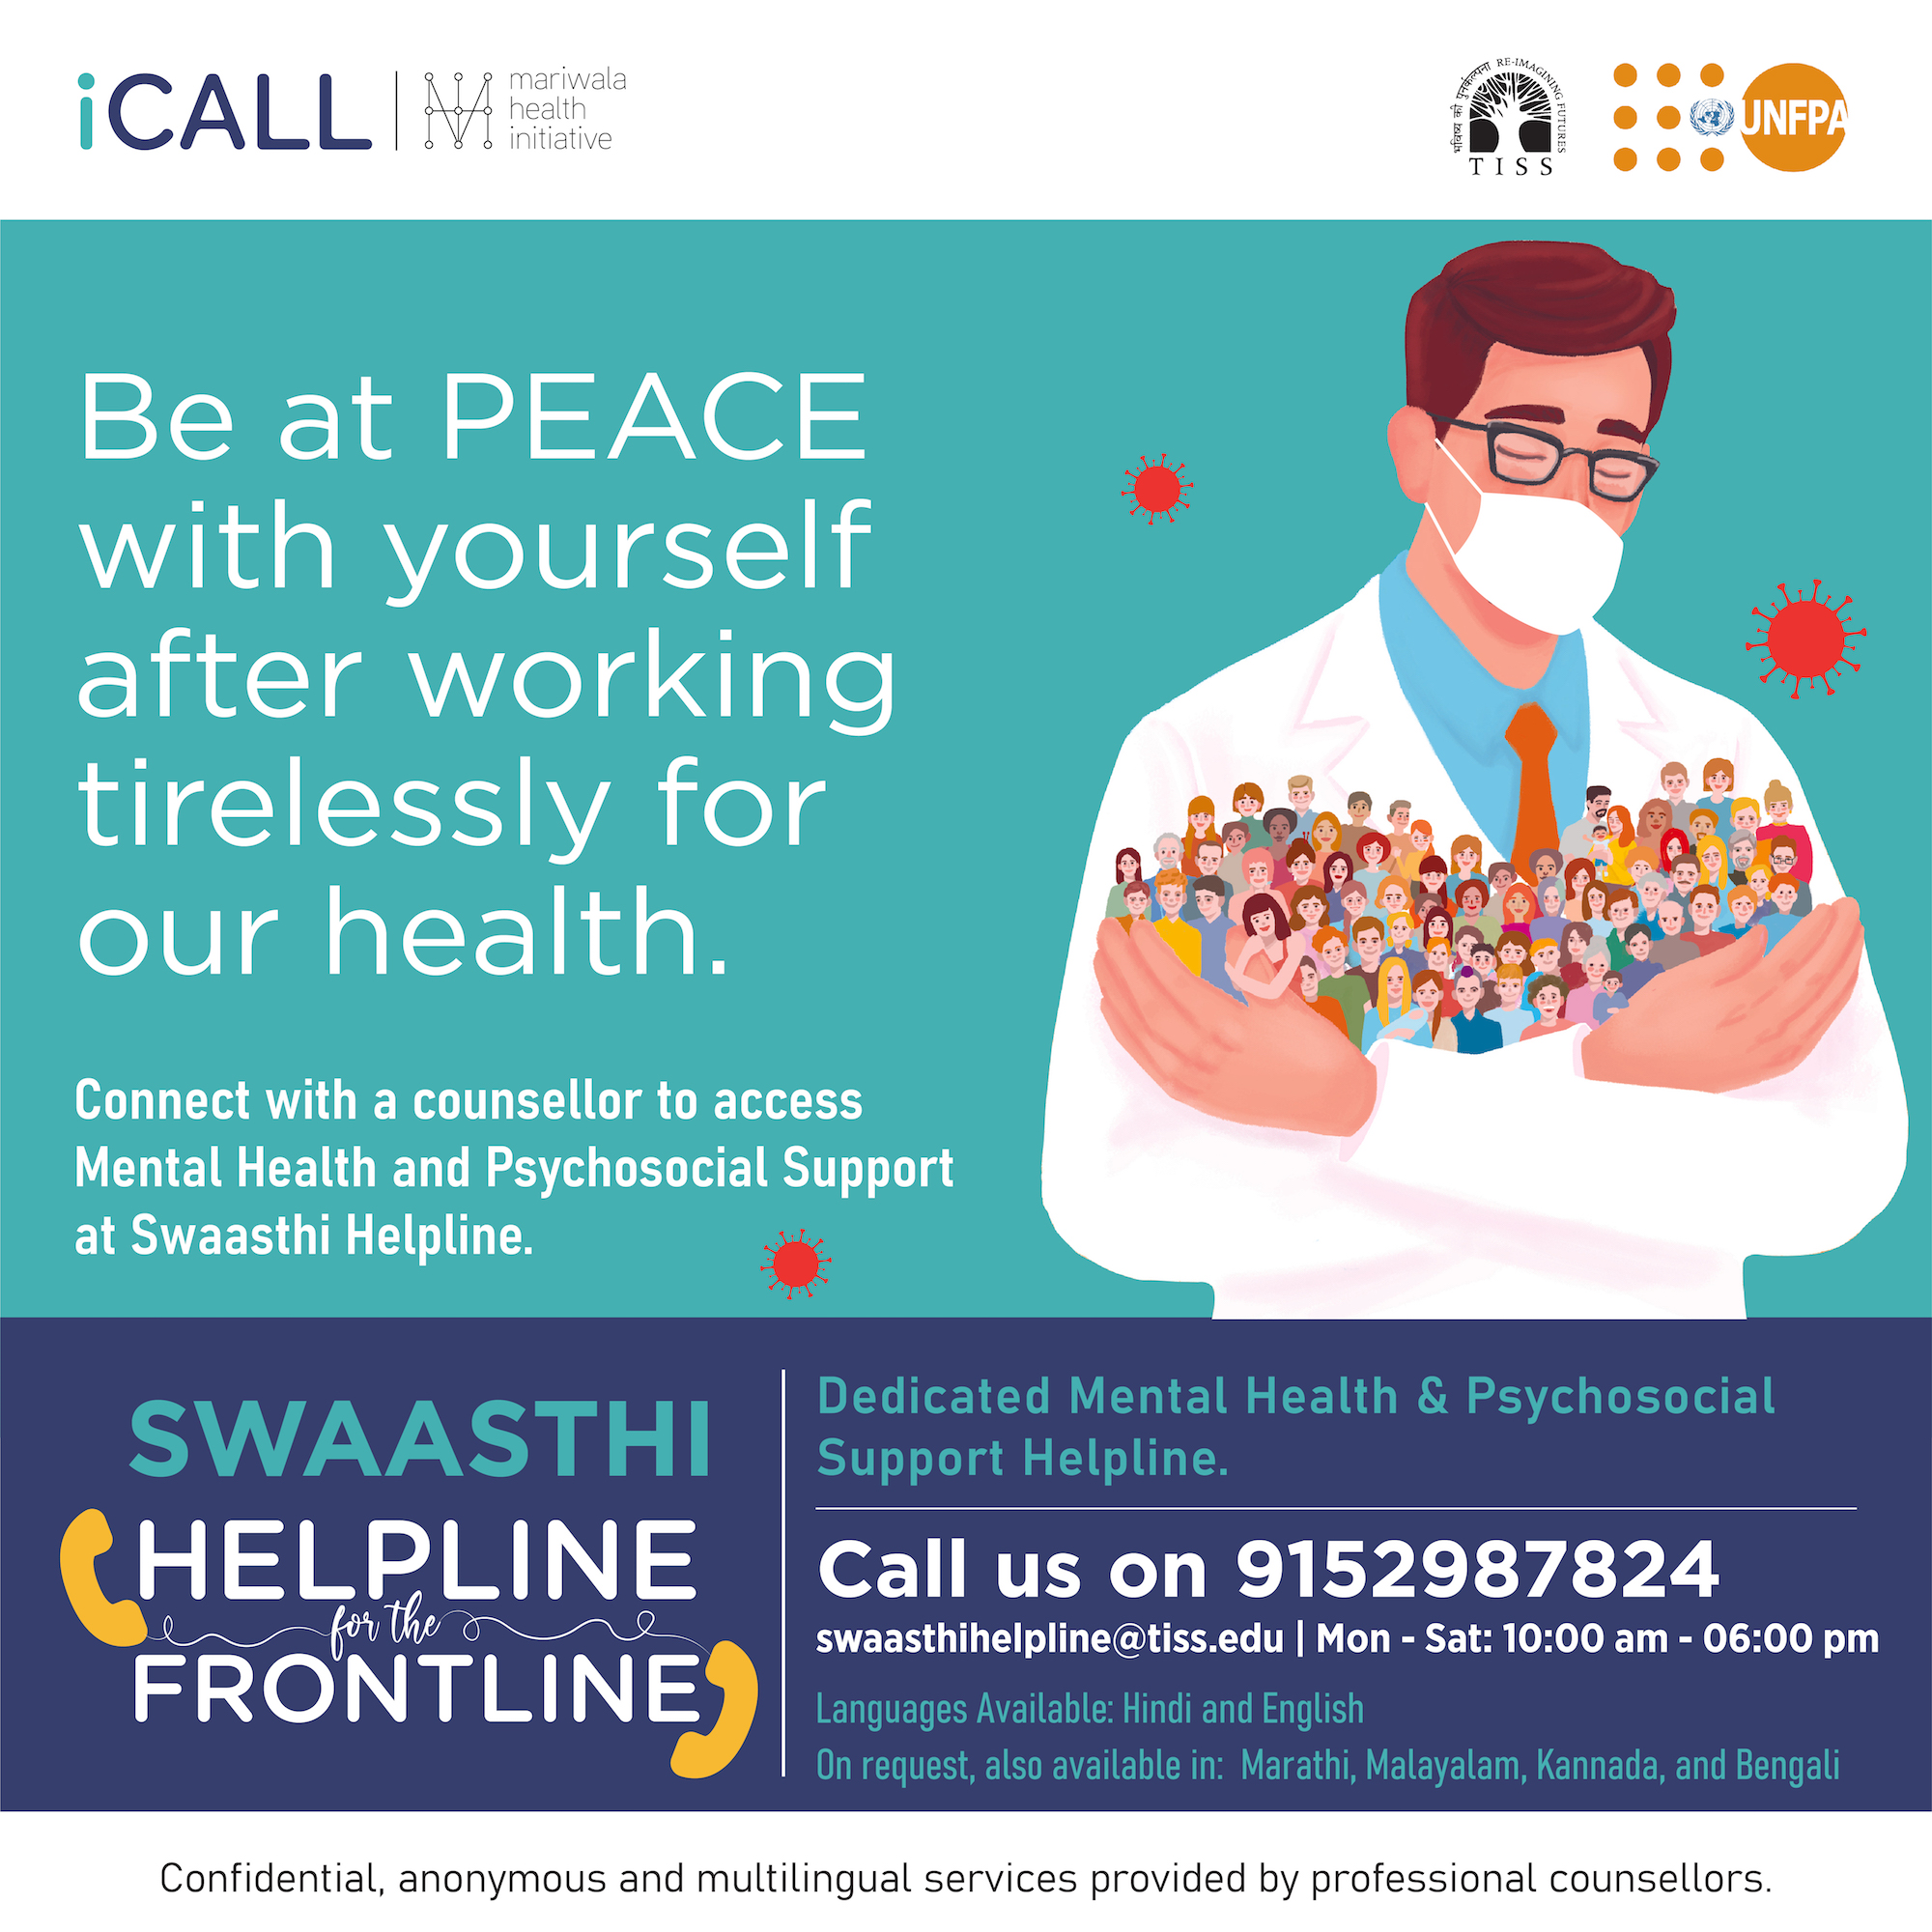 Swaasthi helpline for frontline workers